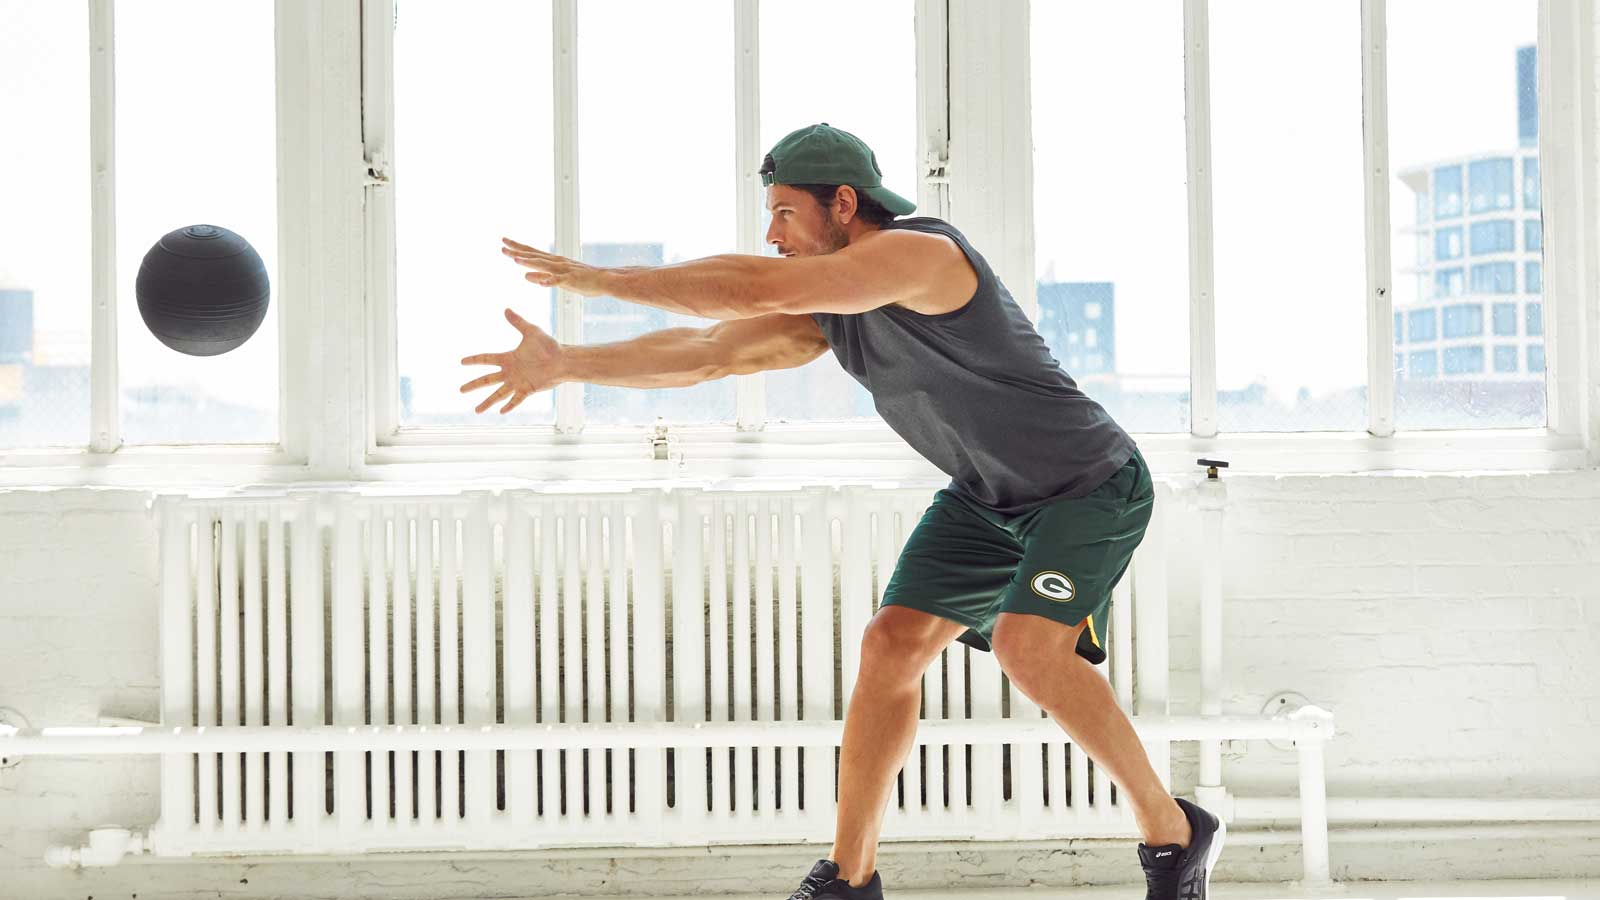 Blast Fat, Get Fit: The Best Gear for At-home HIIT Workouts